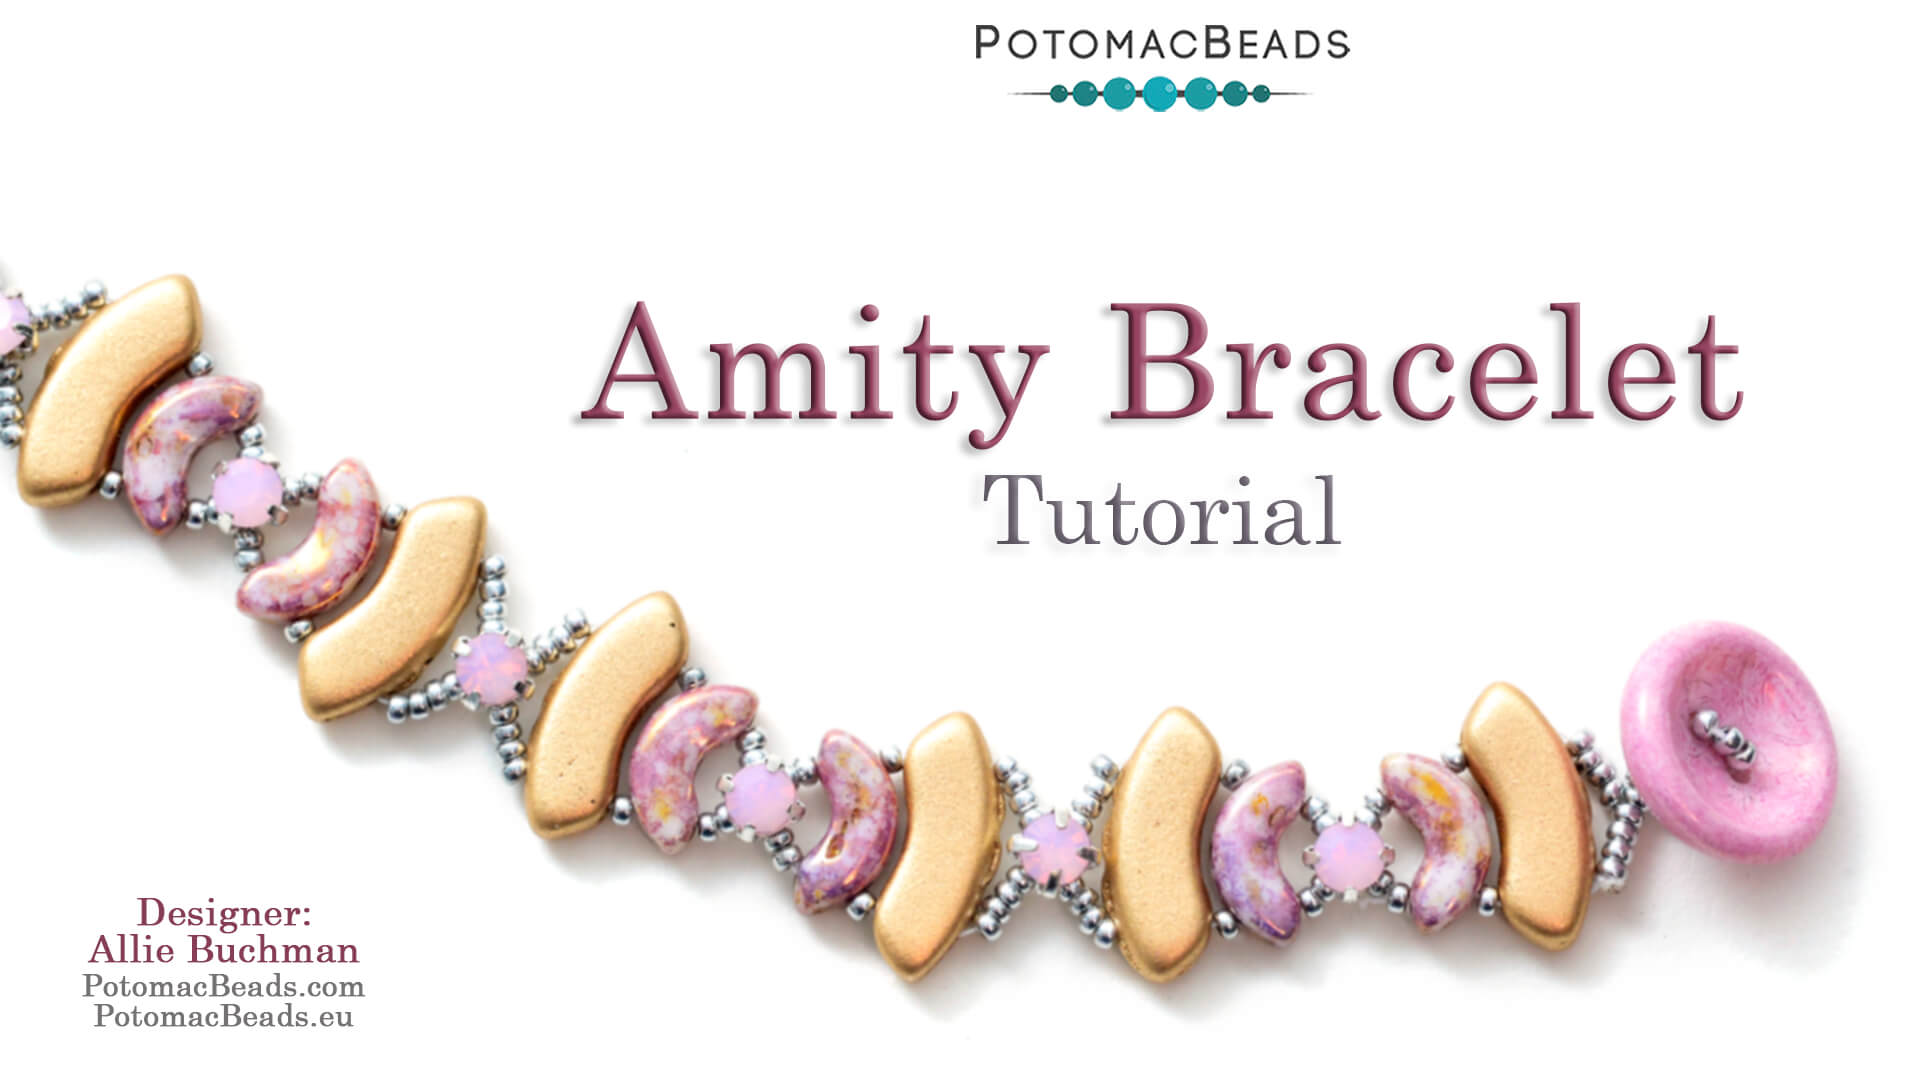 How to Bead / Free Video Tutorials / 2-Needle Project & Stringing Videos / Amity Bracelet Tutorial